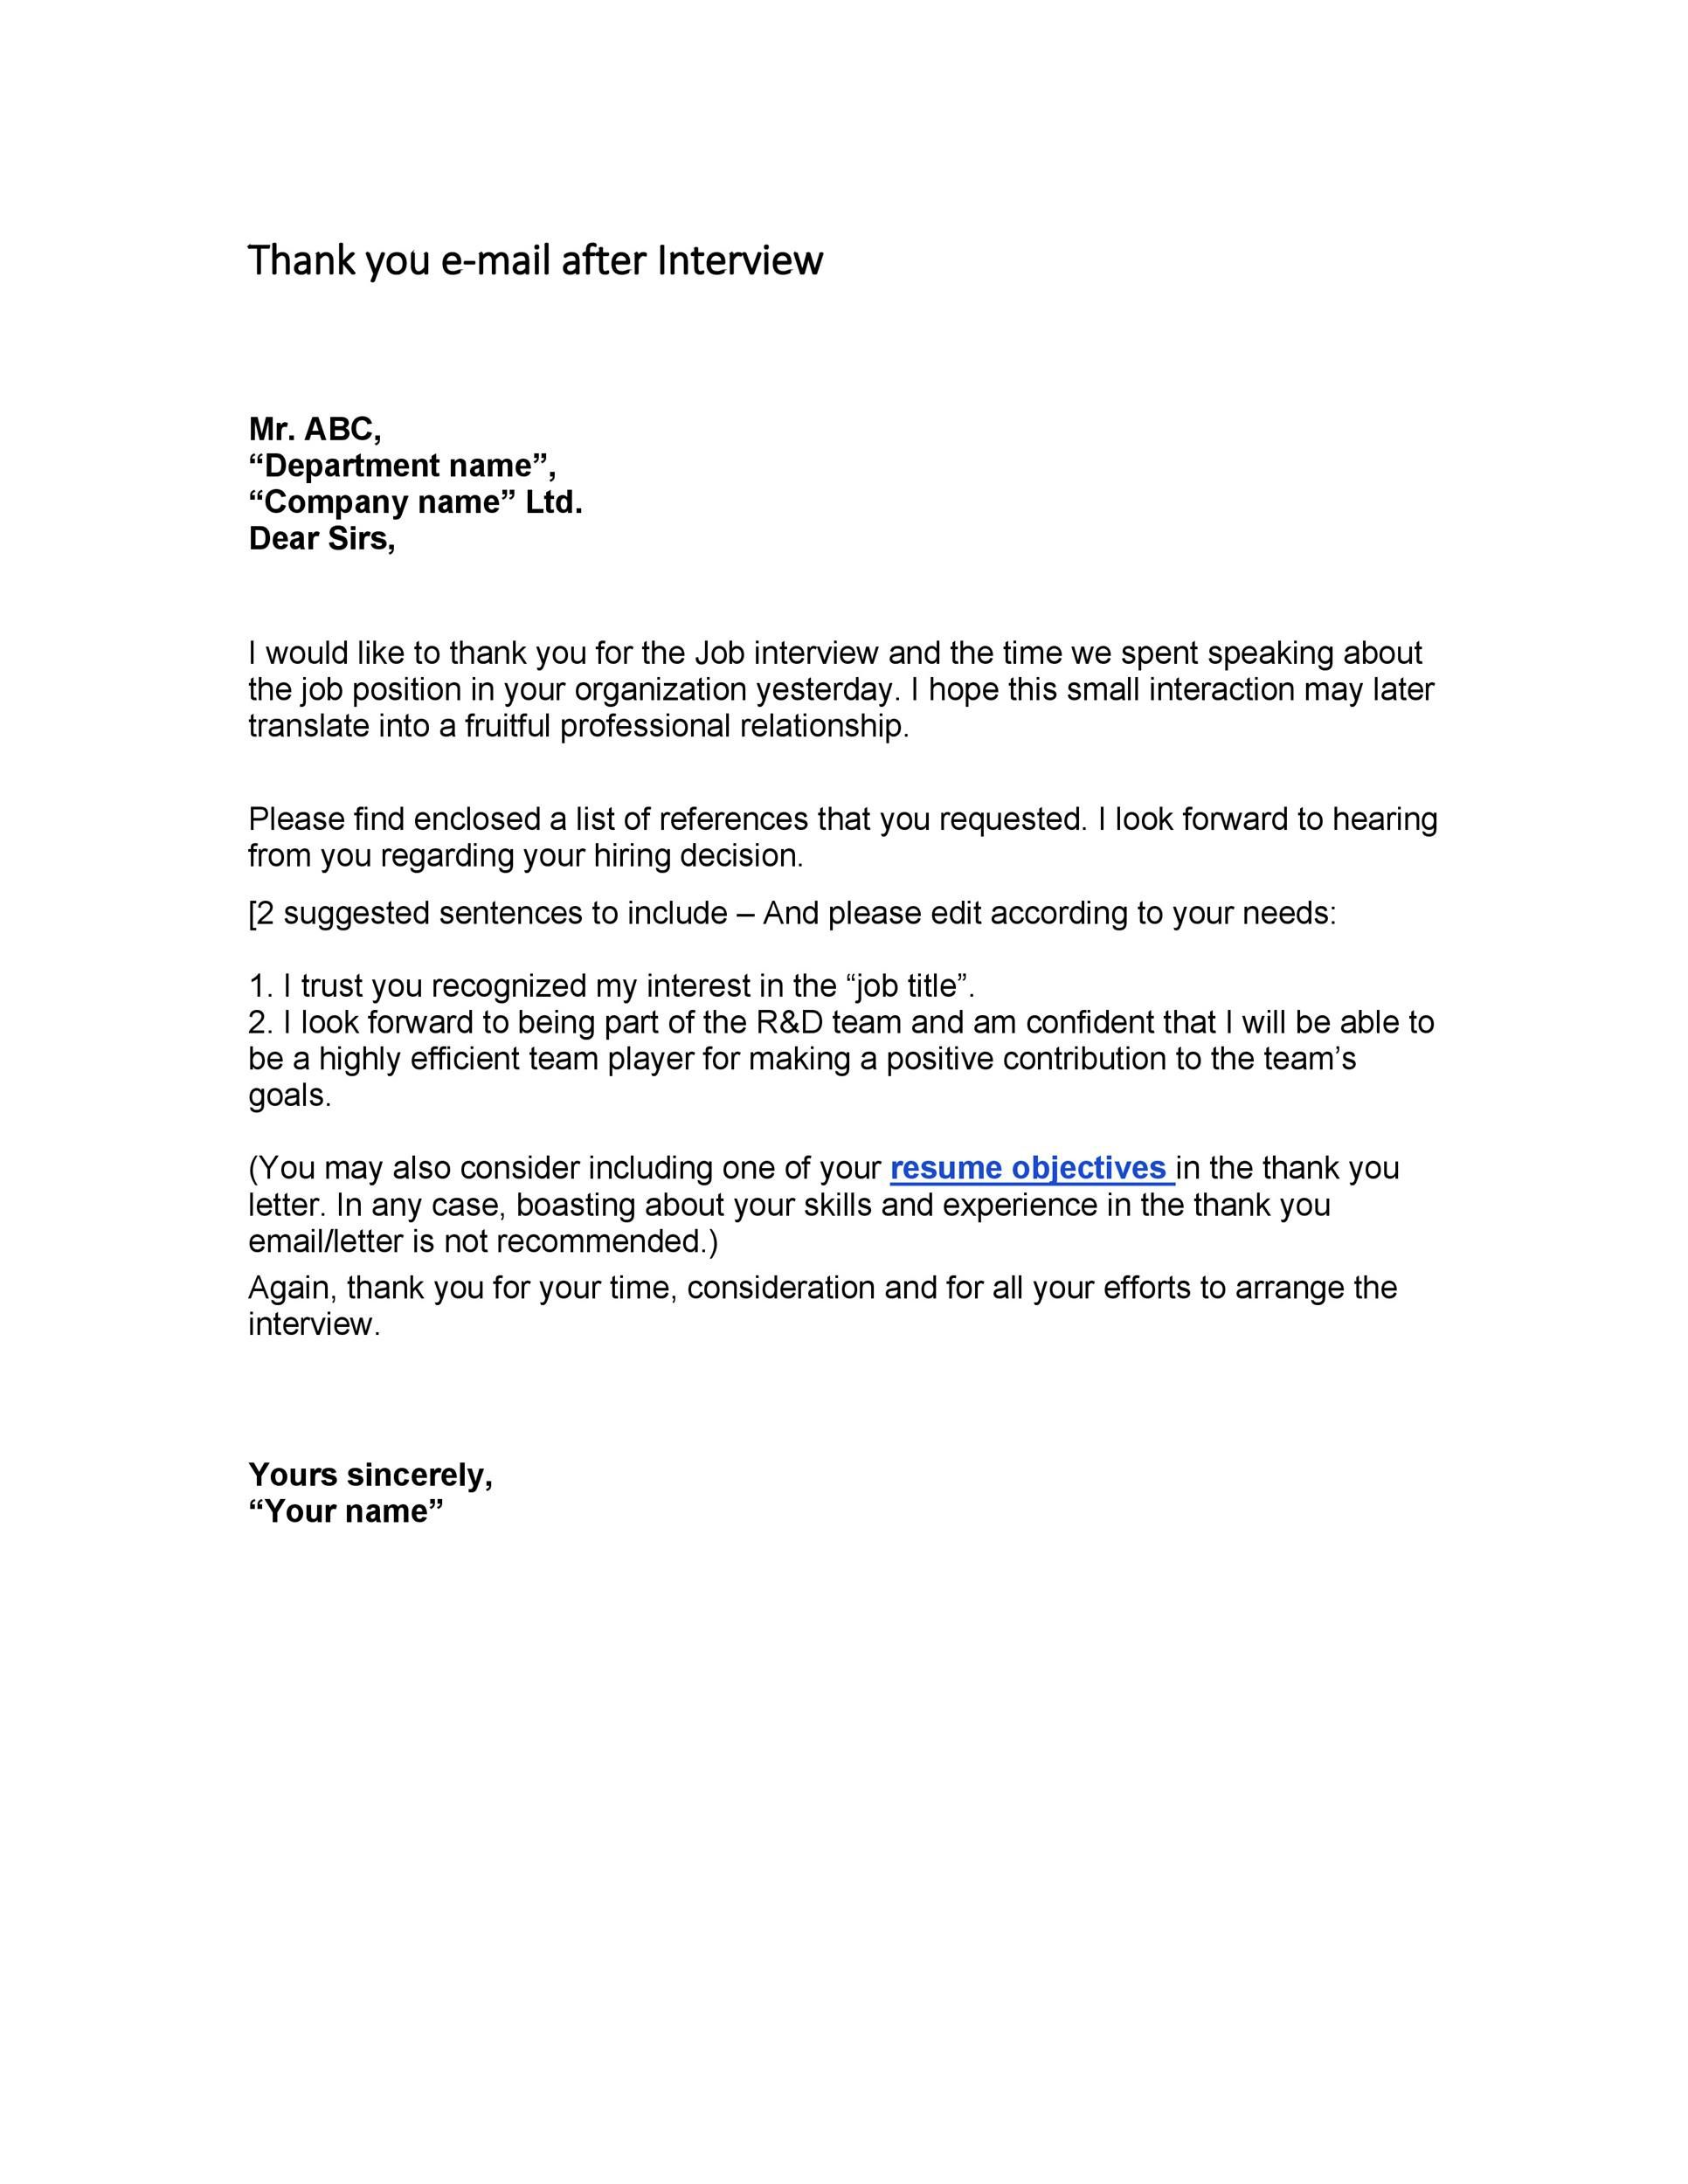 007 Breathtaking Follow Up Email Sample After Interview Idea  Polite When You Haven't Heard BackFull